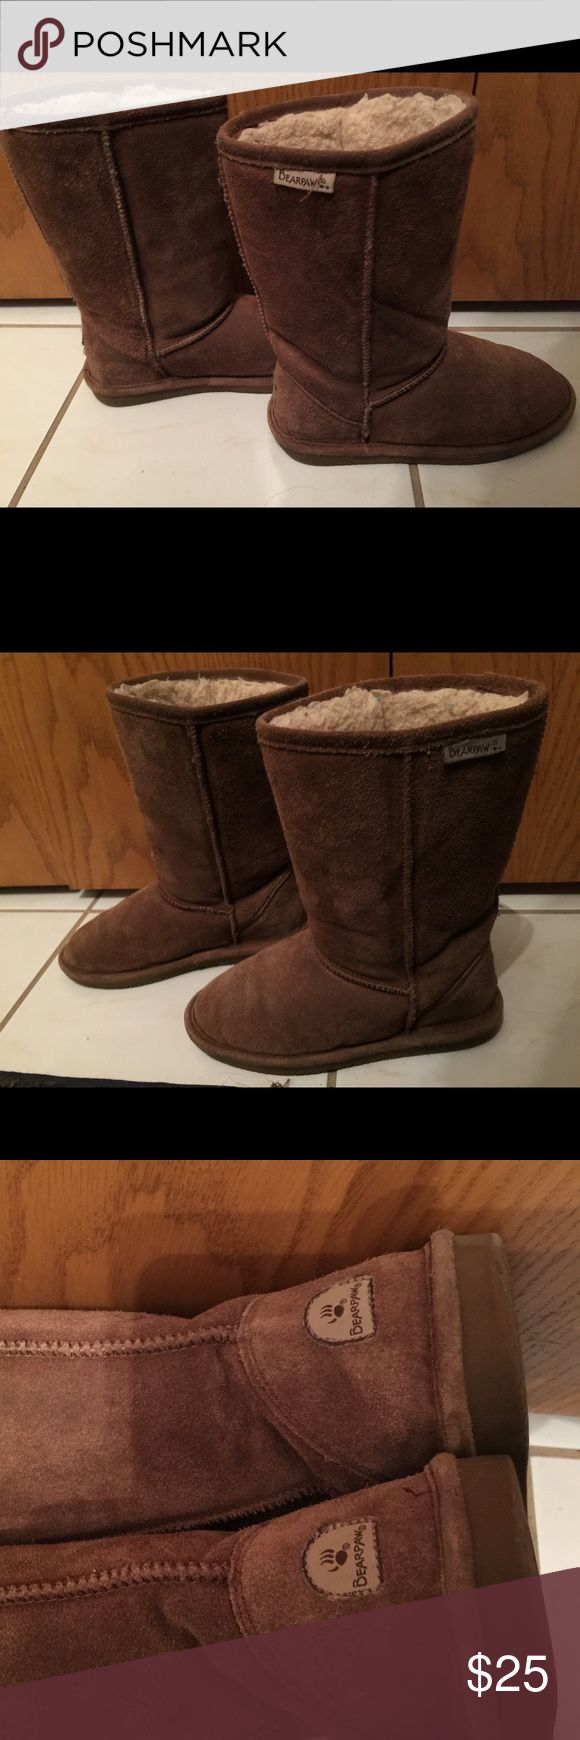 Brown Suede BearPaw boots - Girls Sz 4 Brown Suede BearPaw boots - Girls Sz 4 - Very good condition. Soles show minimal wear, suede in great condition. BearPaw Shoes Boots